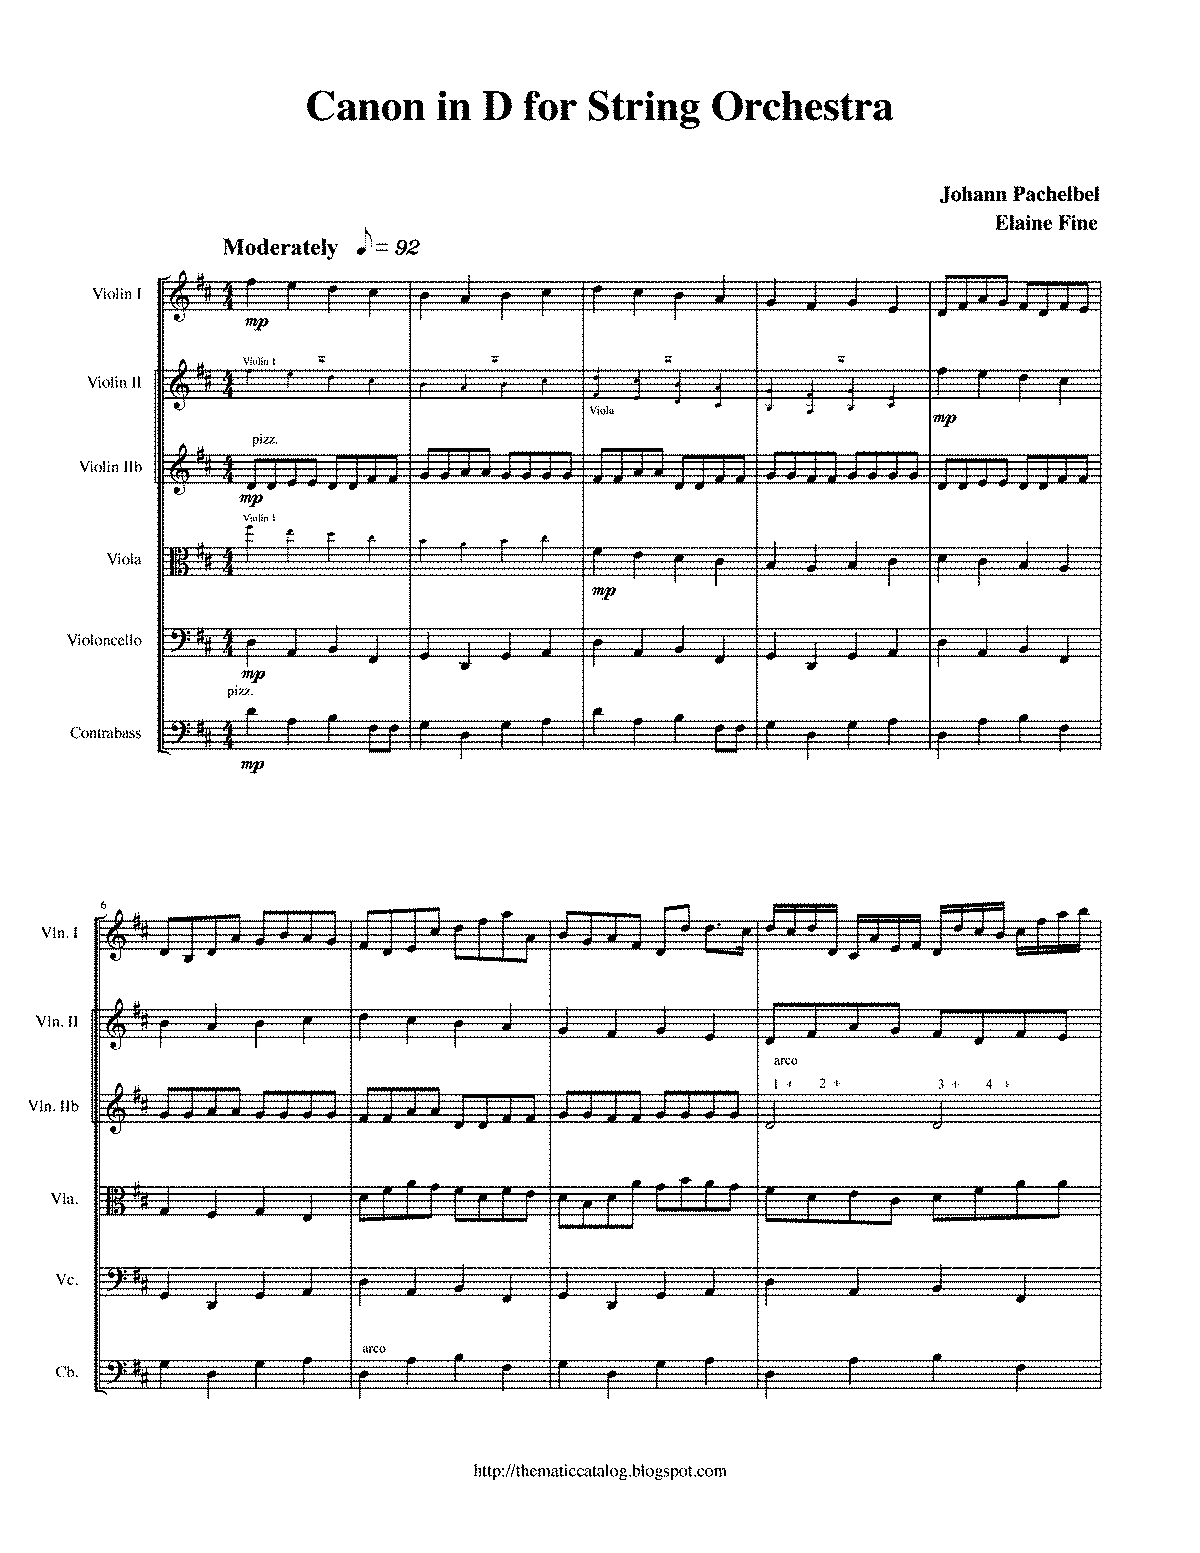 WIMA.7e38-Pachelbel Canon in D for String Orchestra.pdf